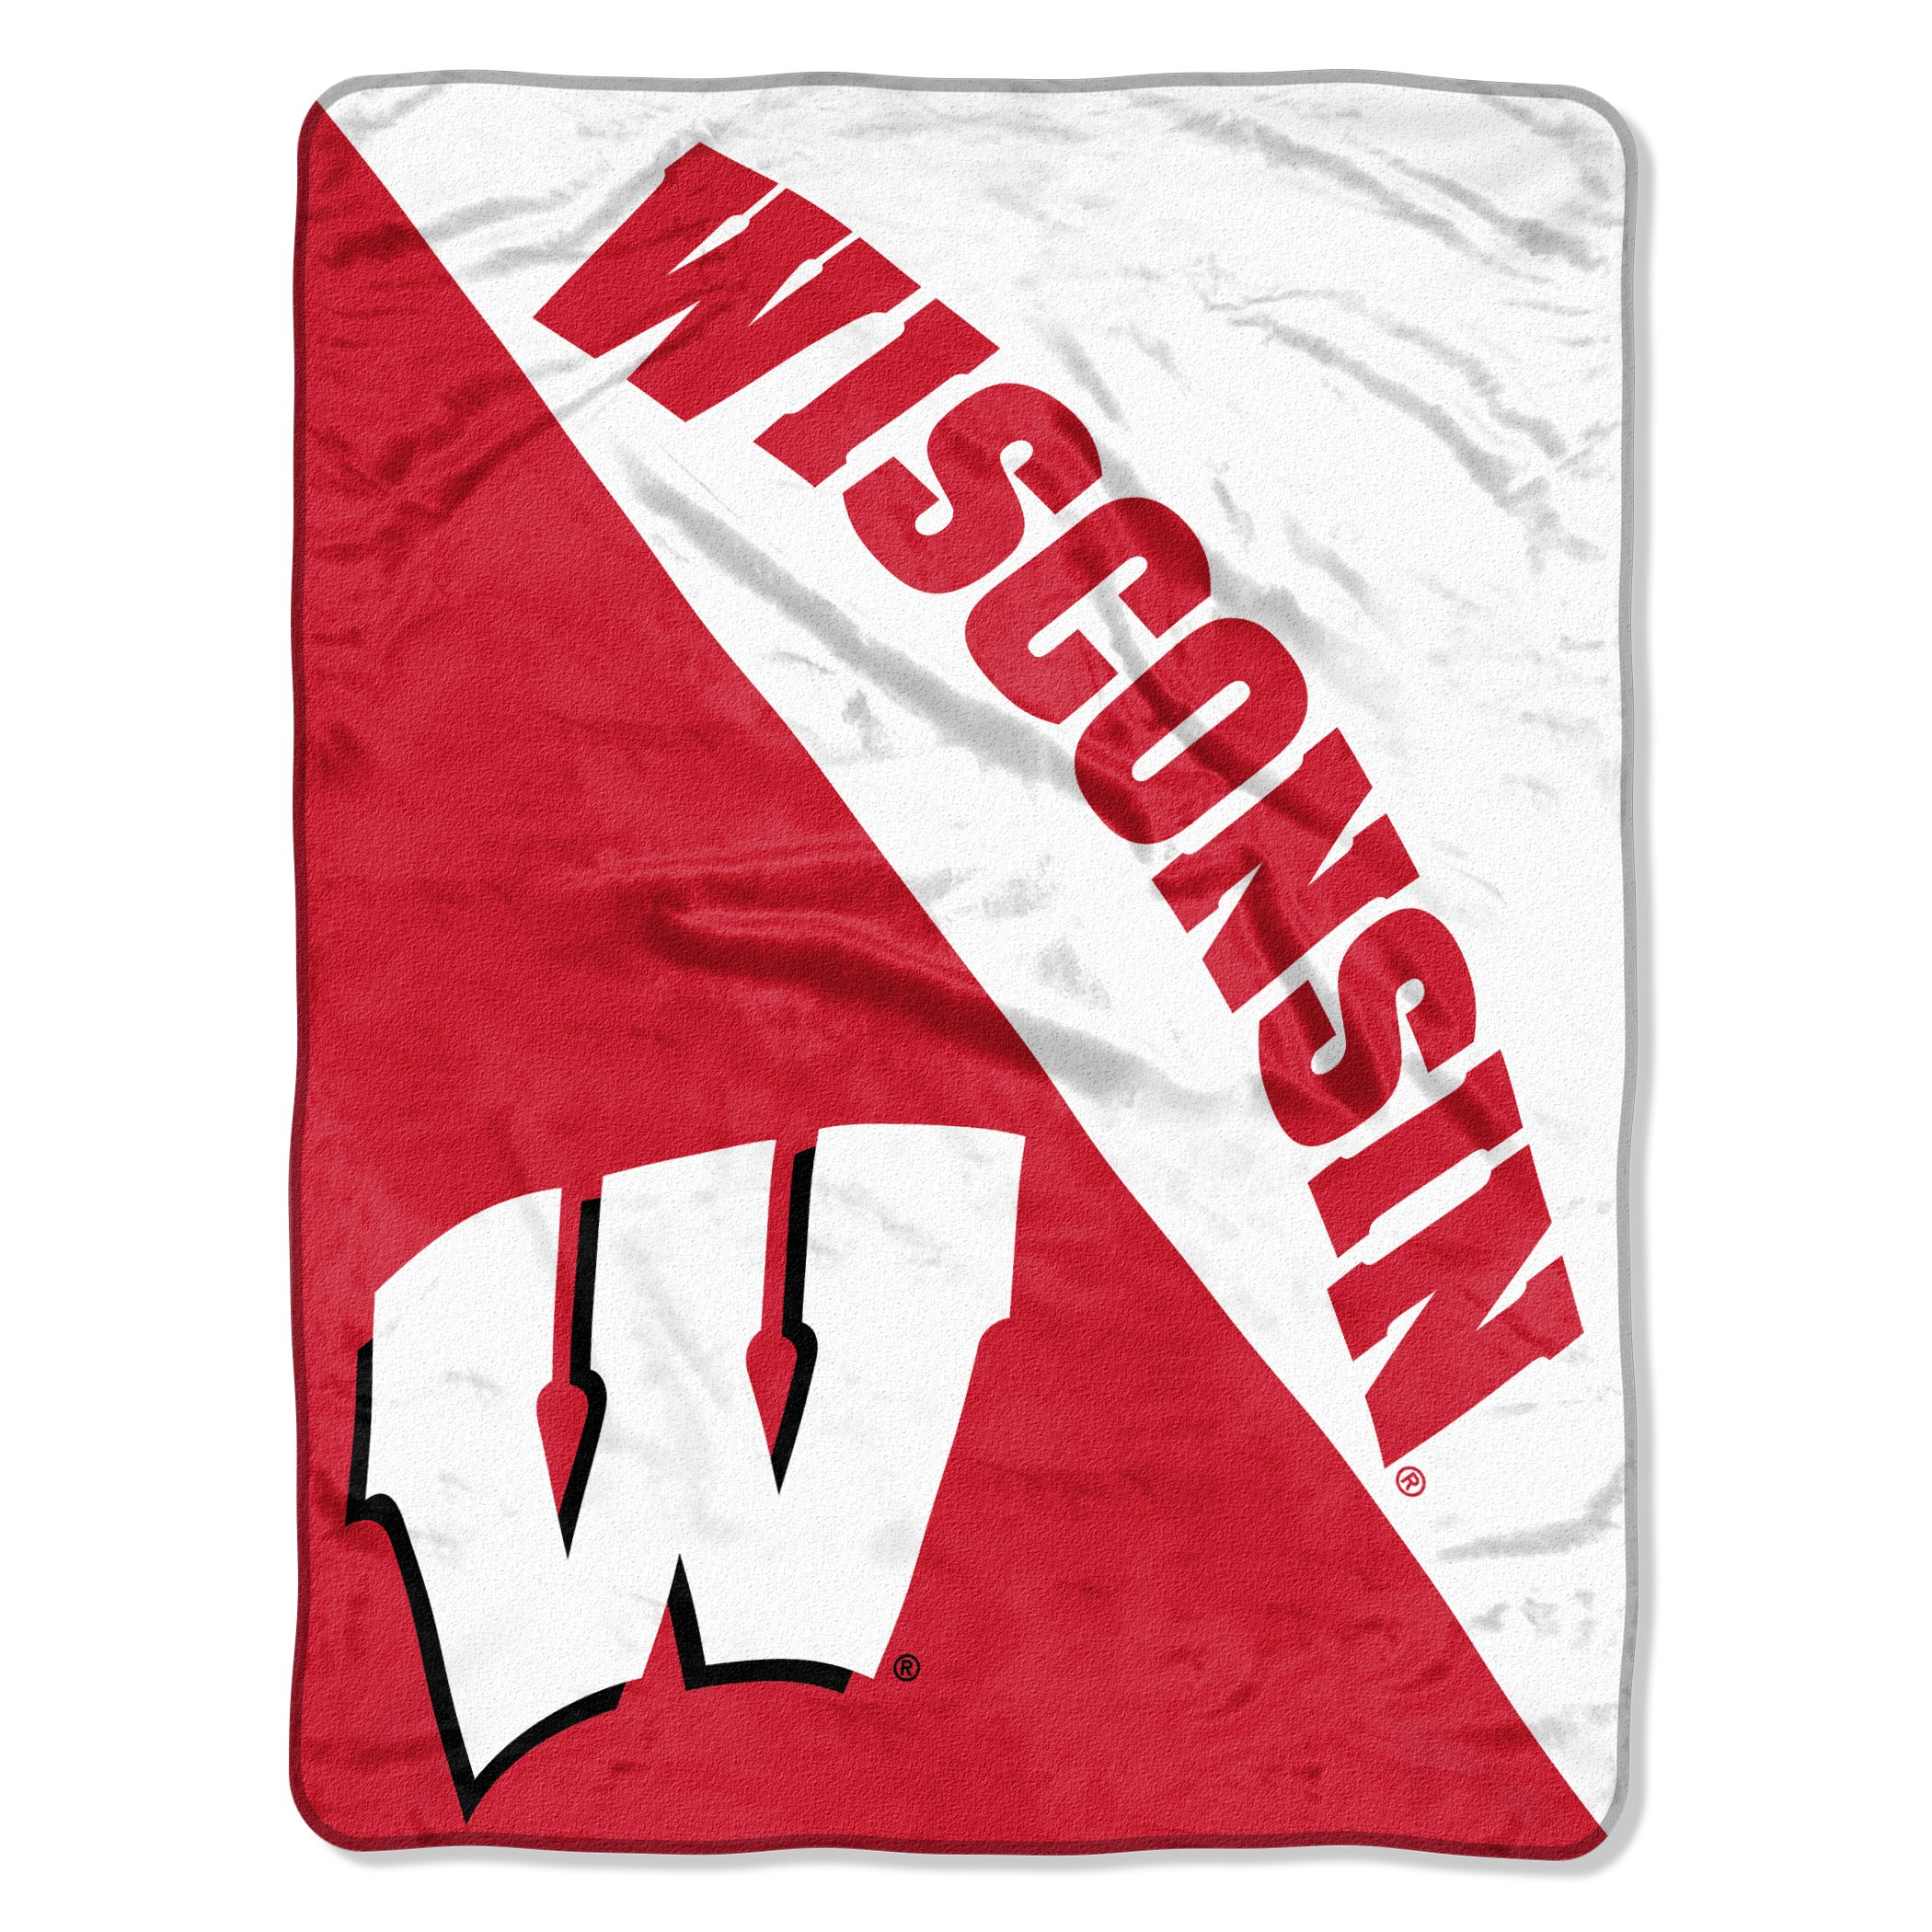 The Northwest Company Officially Licensed NCAA Wisconsin Badgers Halftone Micro Raschel Throw Blanket, 46'' x 60'', Multi Color by The Northwest Company